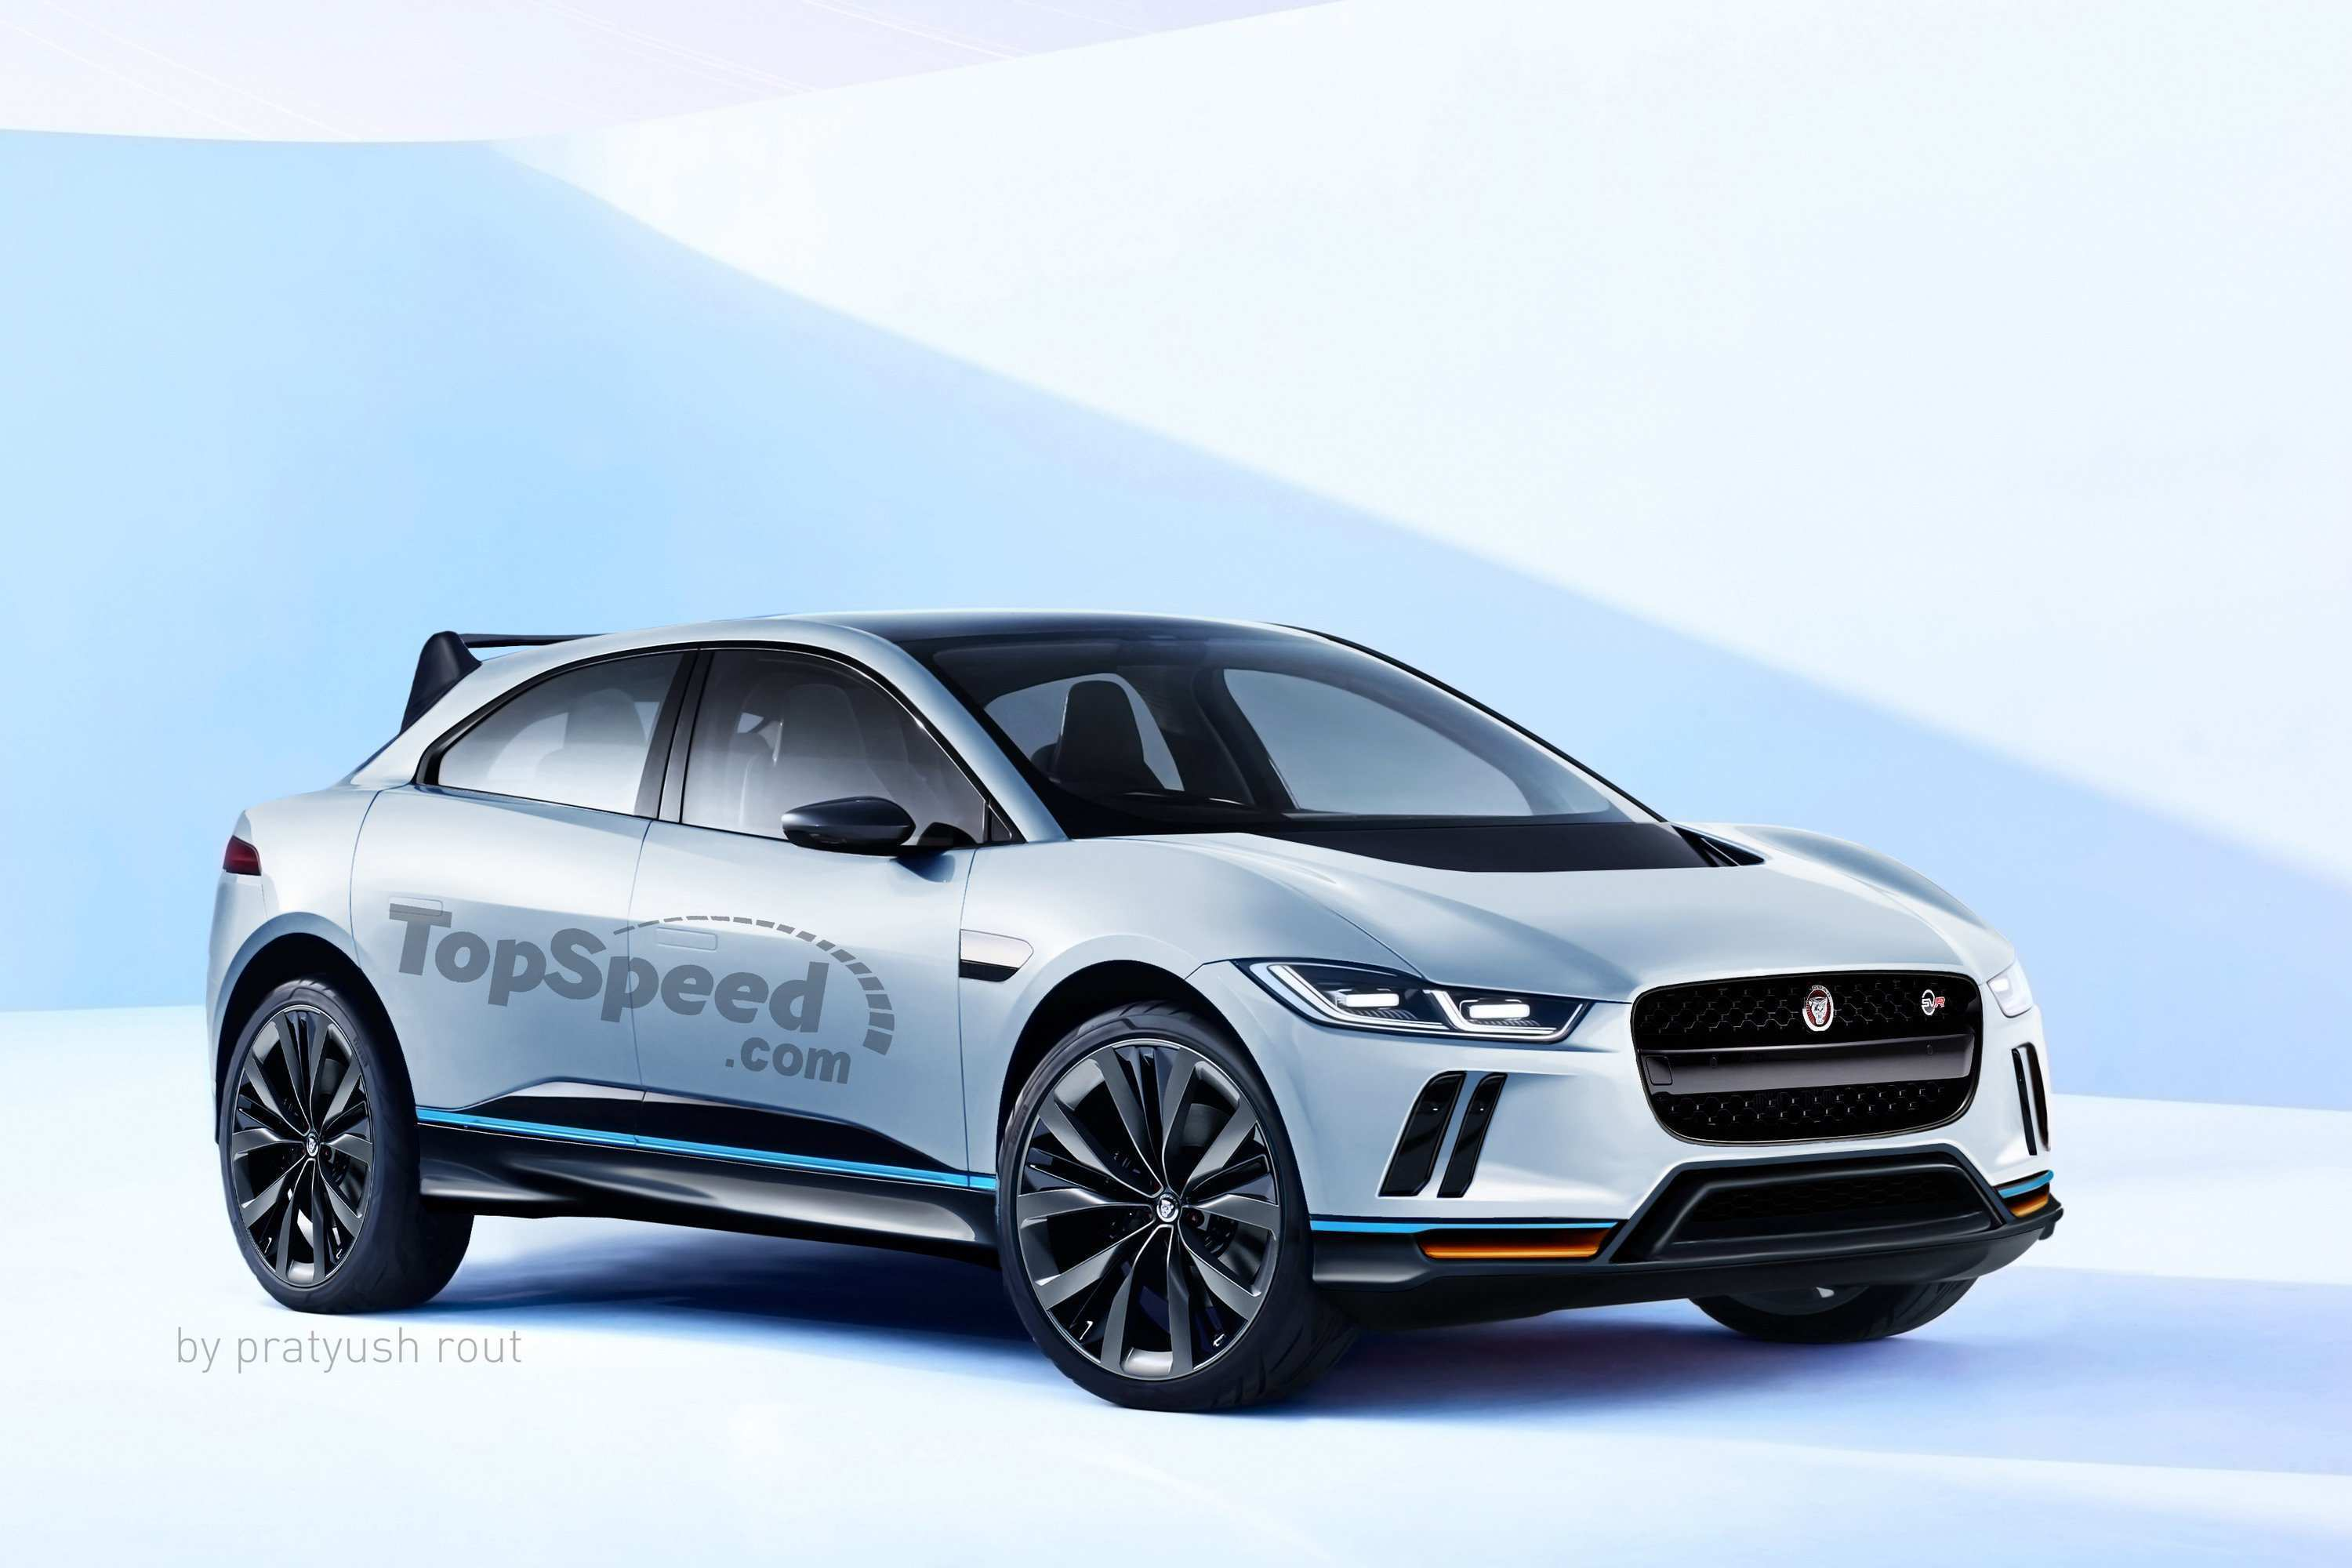 37 Best Review Jaguar I Pace 2020 Exterior Release for Jaguar I Pace 2020 Exterior